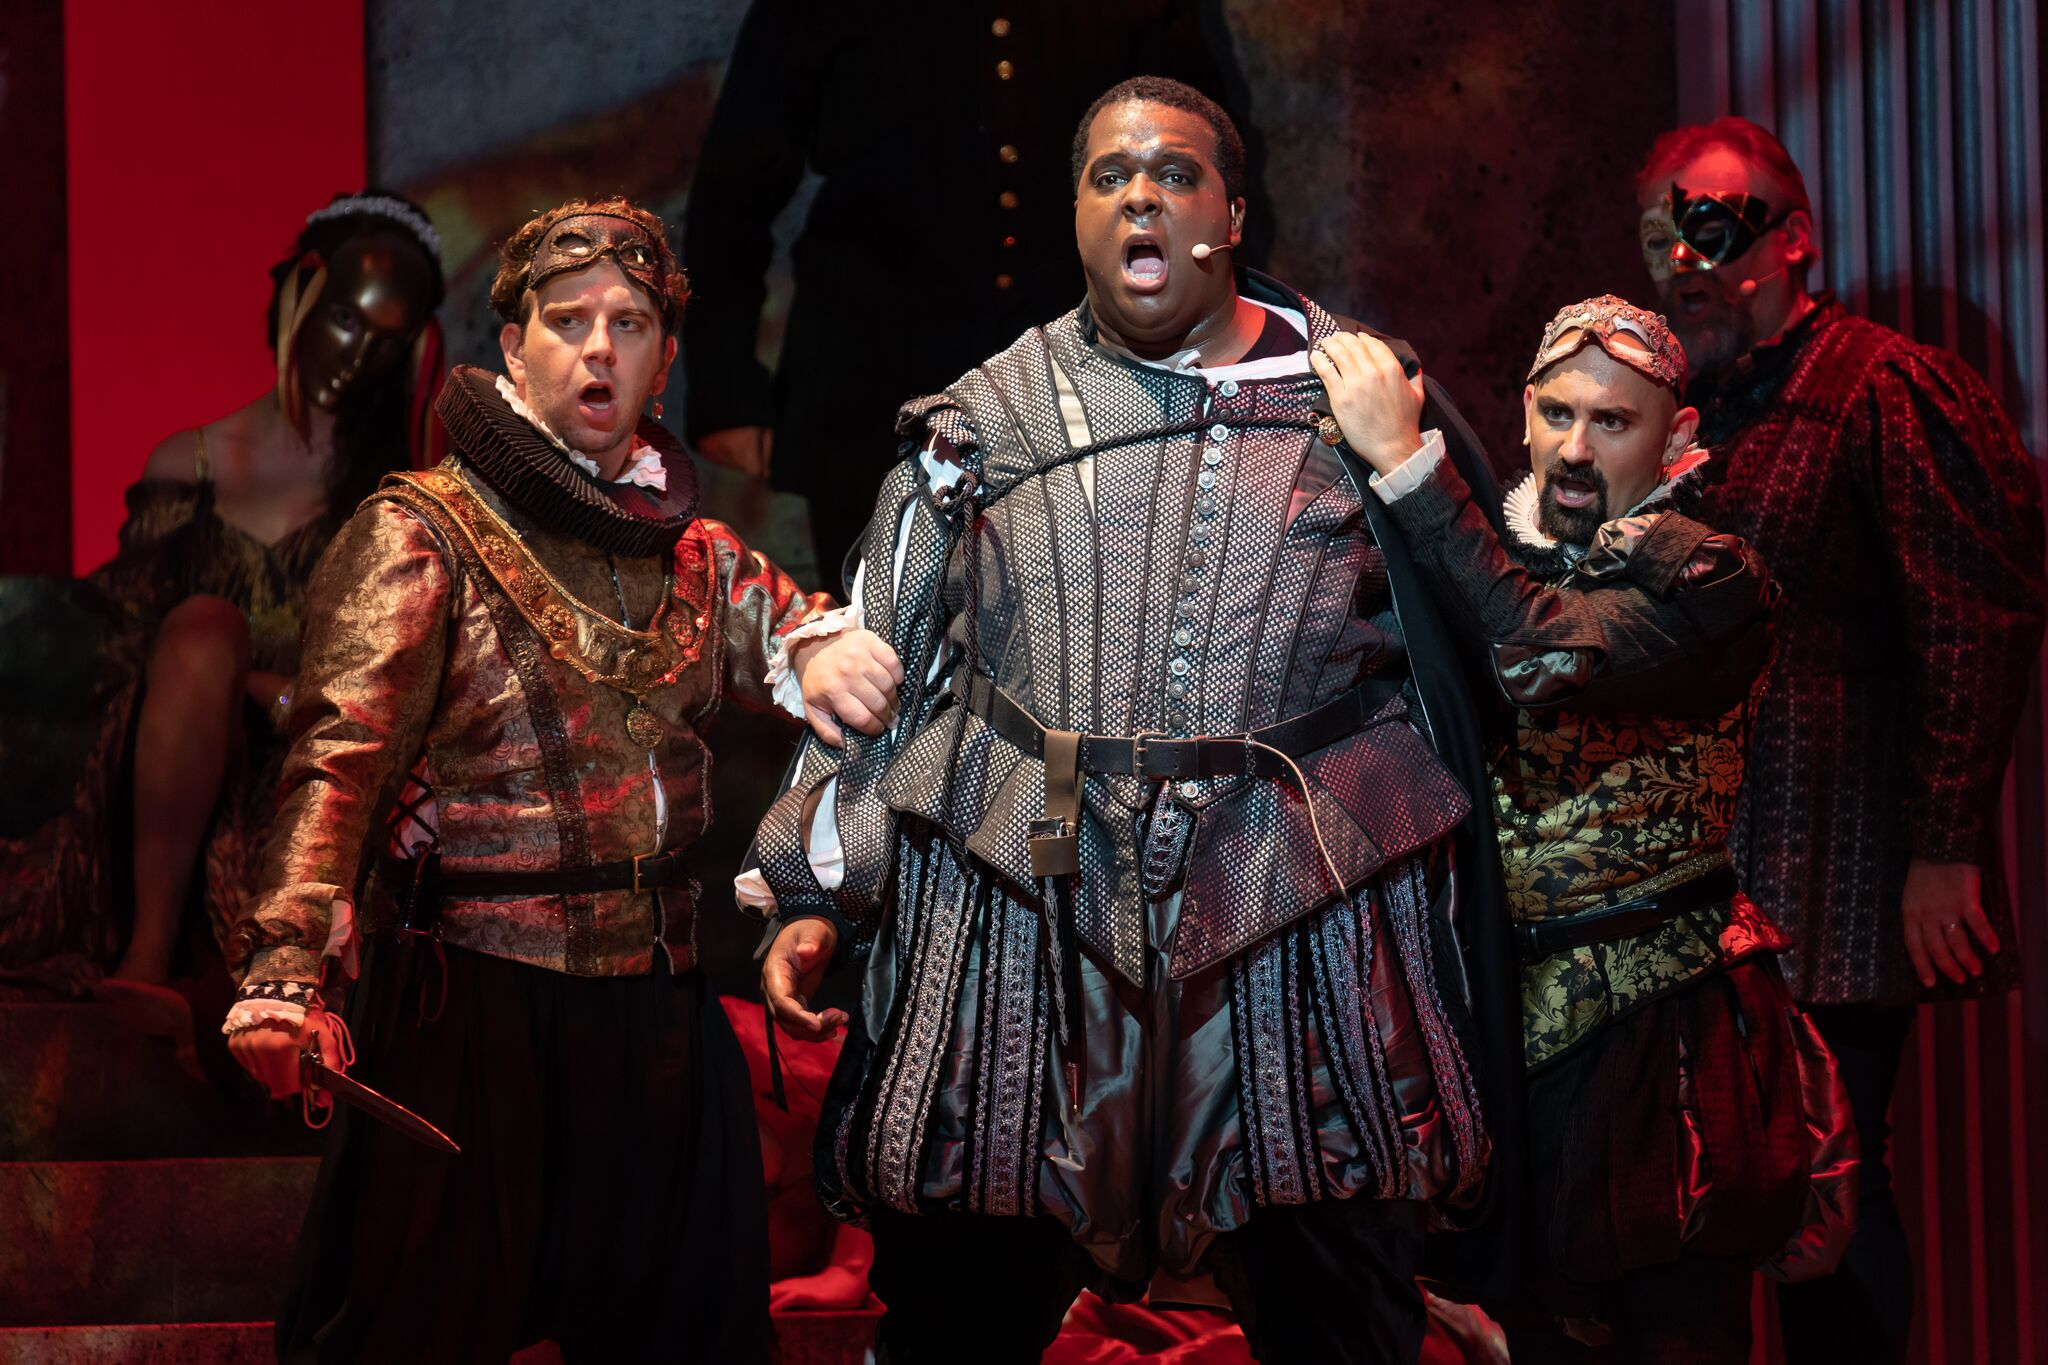 Johnathan McCullough as Marullo, Joshua Conyers as Count Monterone, and Nicholas Nestorak as Matteo Borsa, as the two courtiers restrain the enraged Count. Photos by Scott Suchman; courtesy of Wolf Trap Opera.